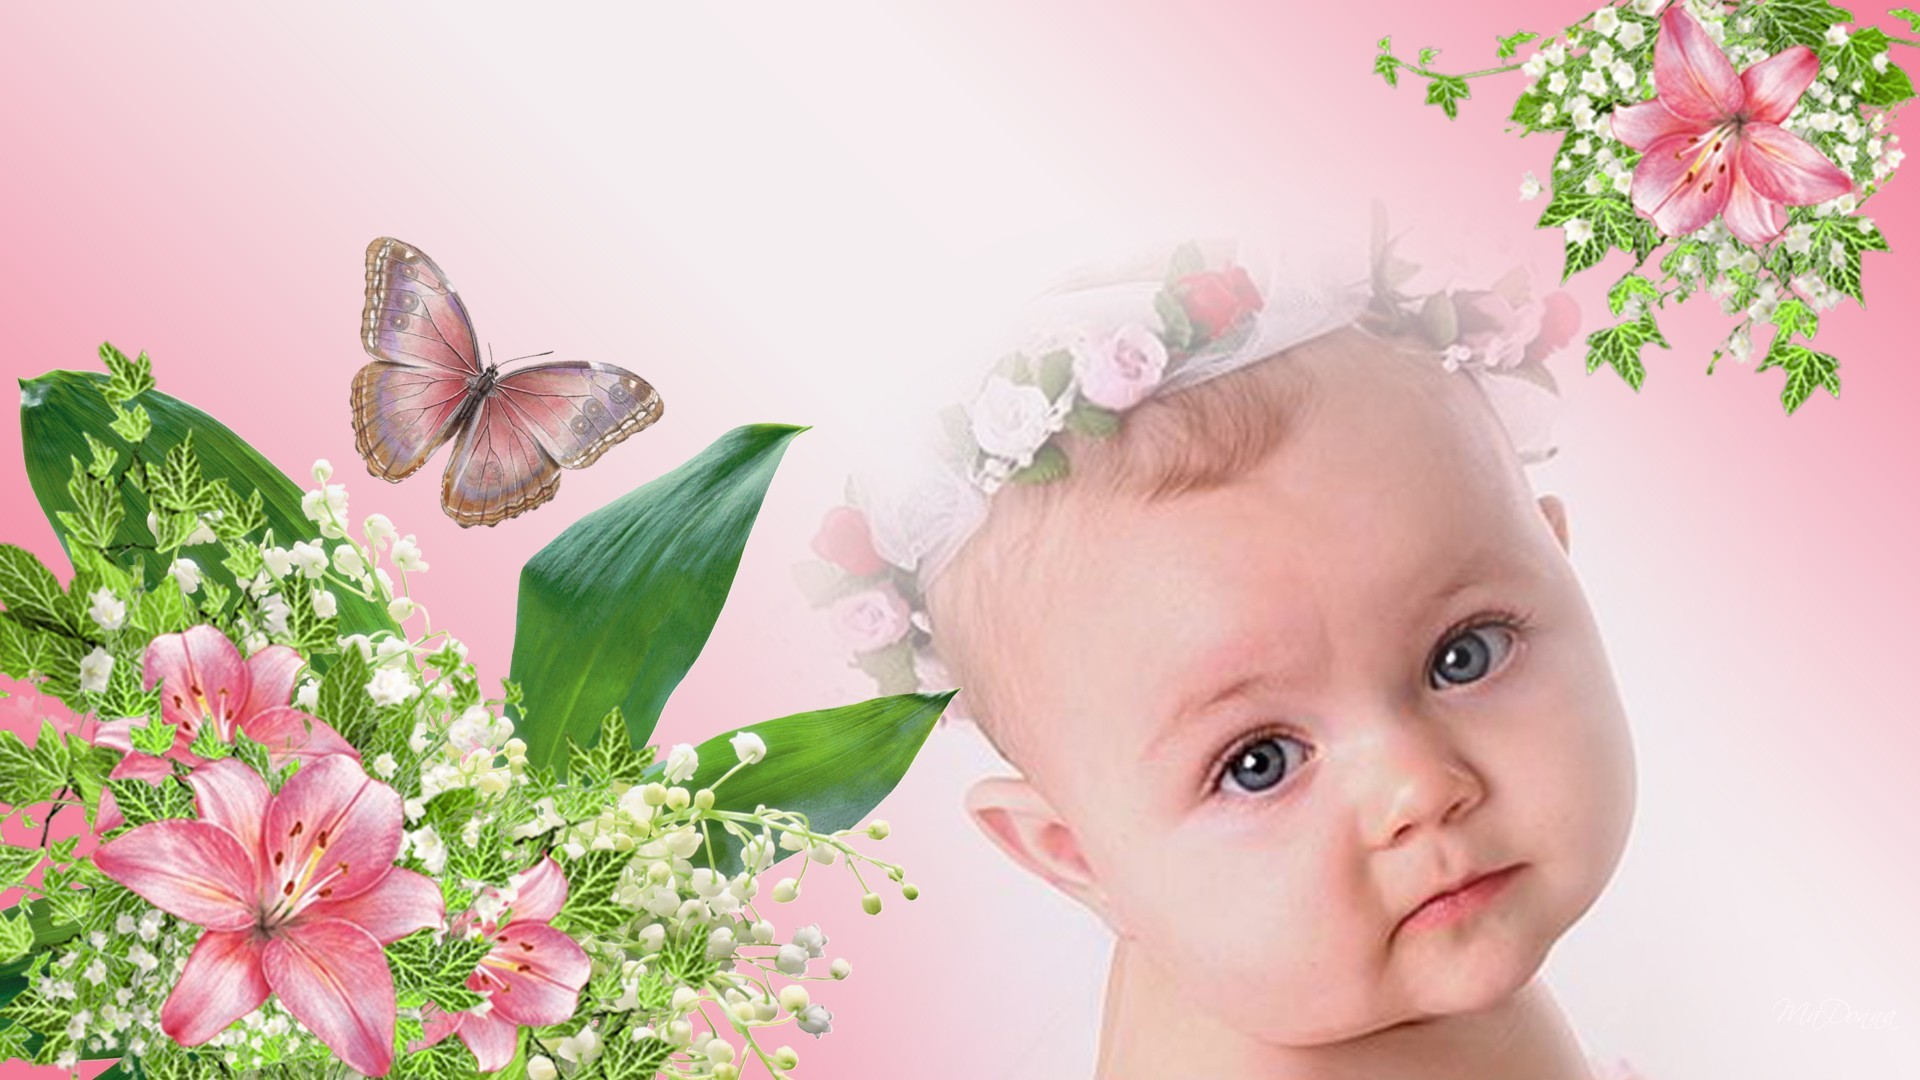 cute baby pics wallpapers 64 images